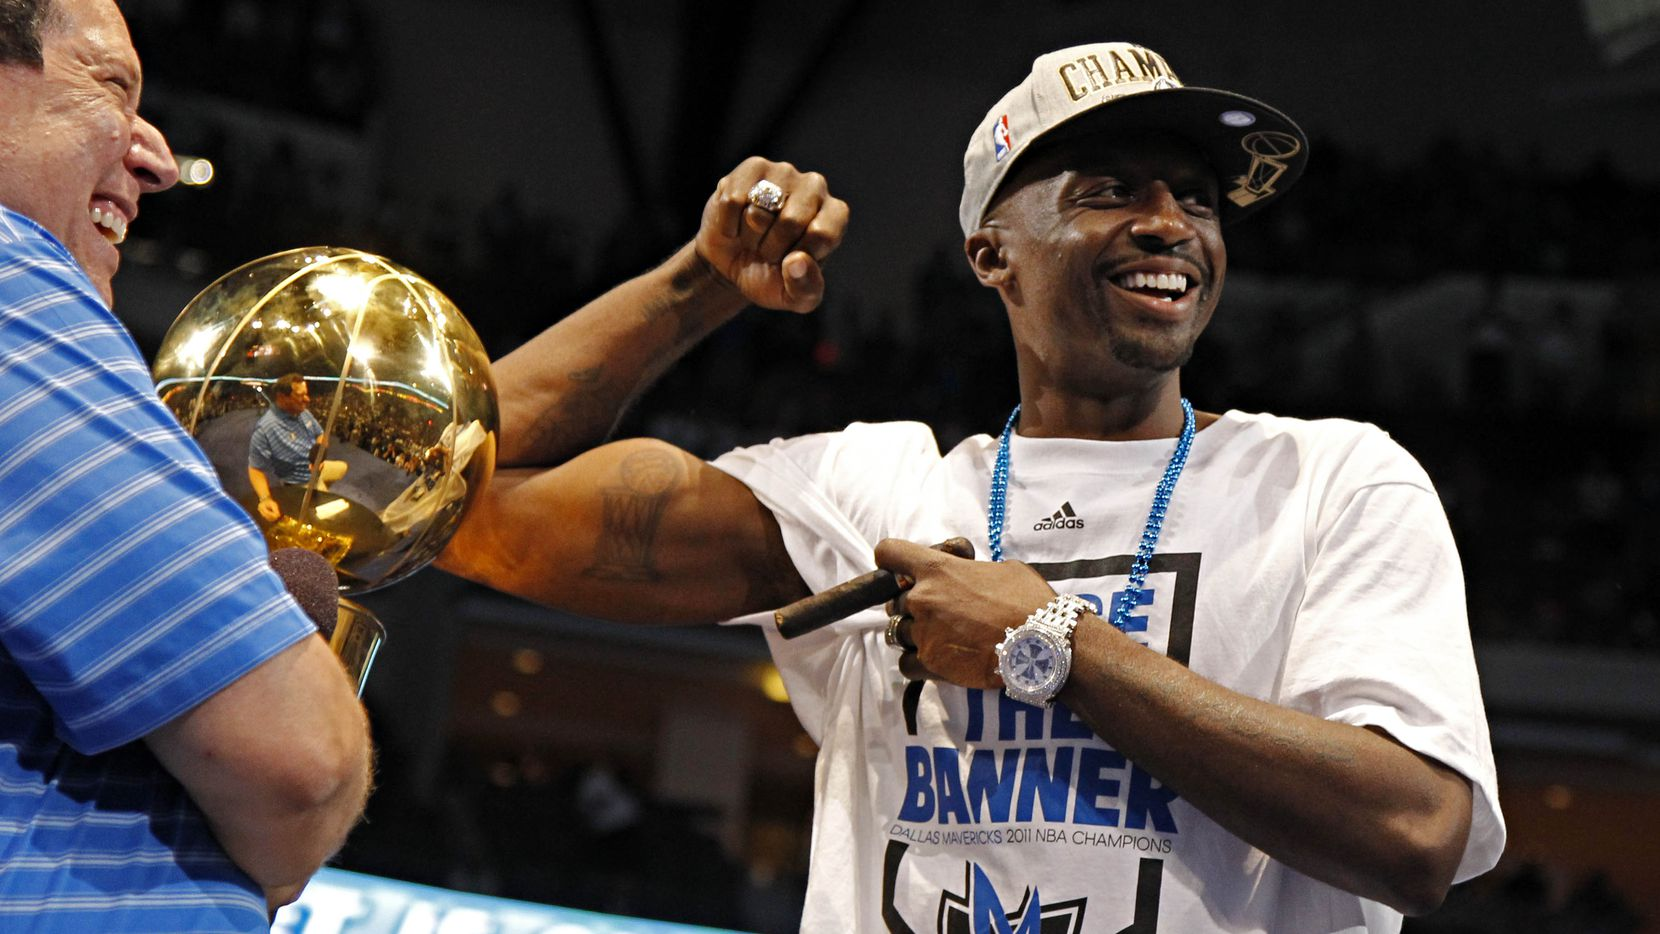 Jason Terry (right) flashes his championship trophy tattoo next to the real deal as Chuck Cooperstein looks on during the 2011 Dallas Mavericks NBA World Championship Celebration Thursday, June 16, 2011 in Dallas. (G.J. McCarthy/The Dallas Morning News) 12122012xSPORTS